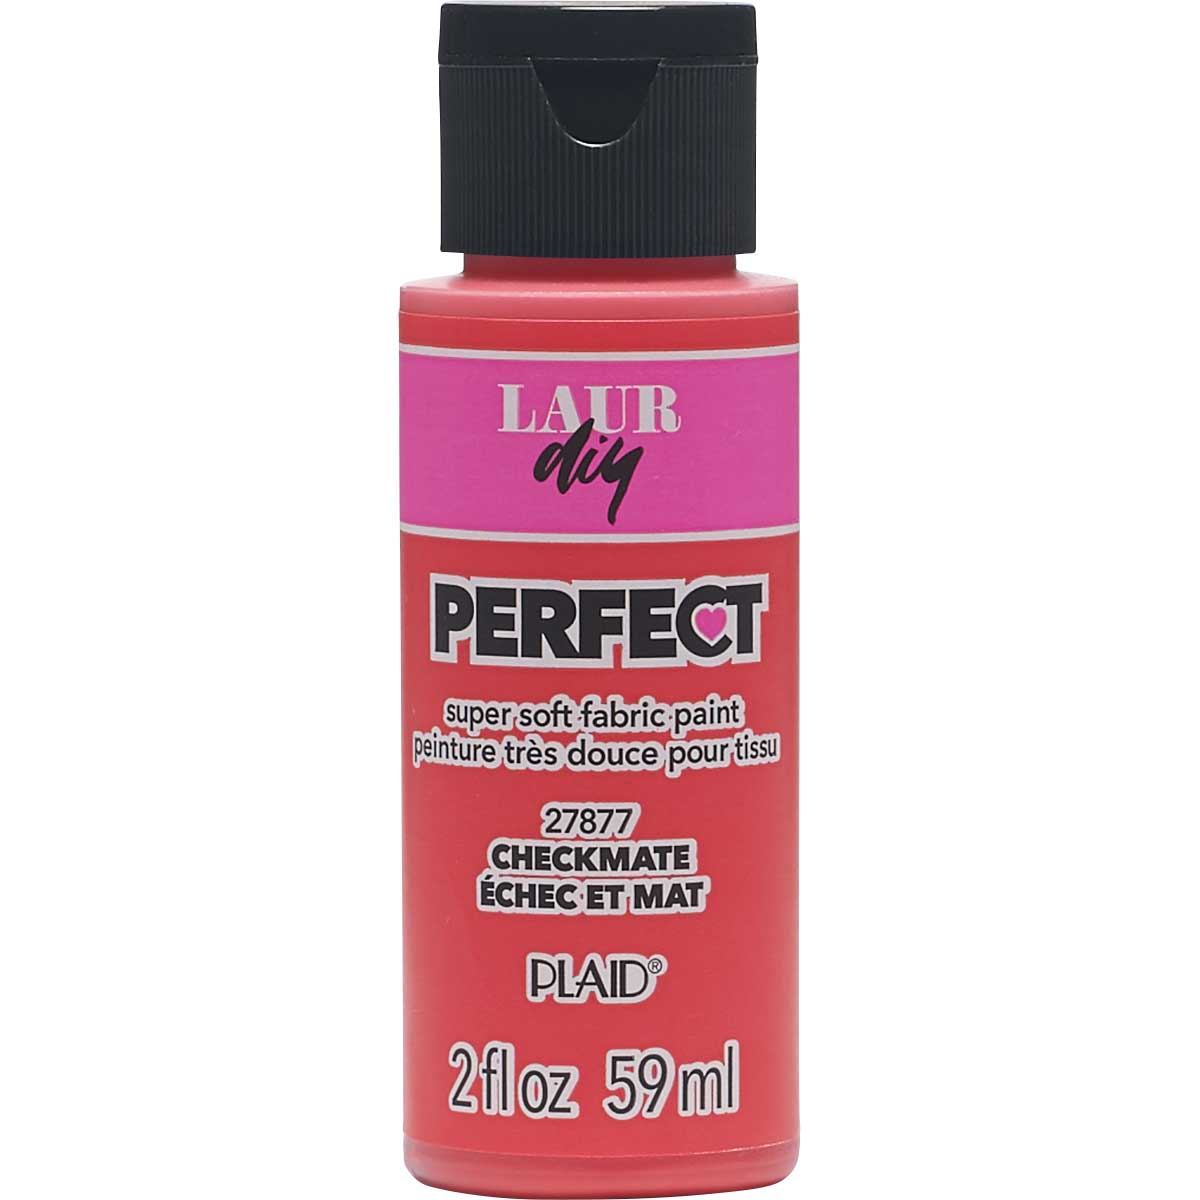 LaurDIY ® Perfect Fabric Paint - Checkmate, 2 oz.